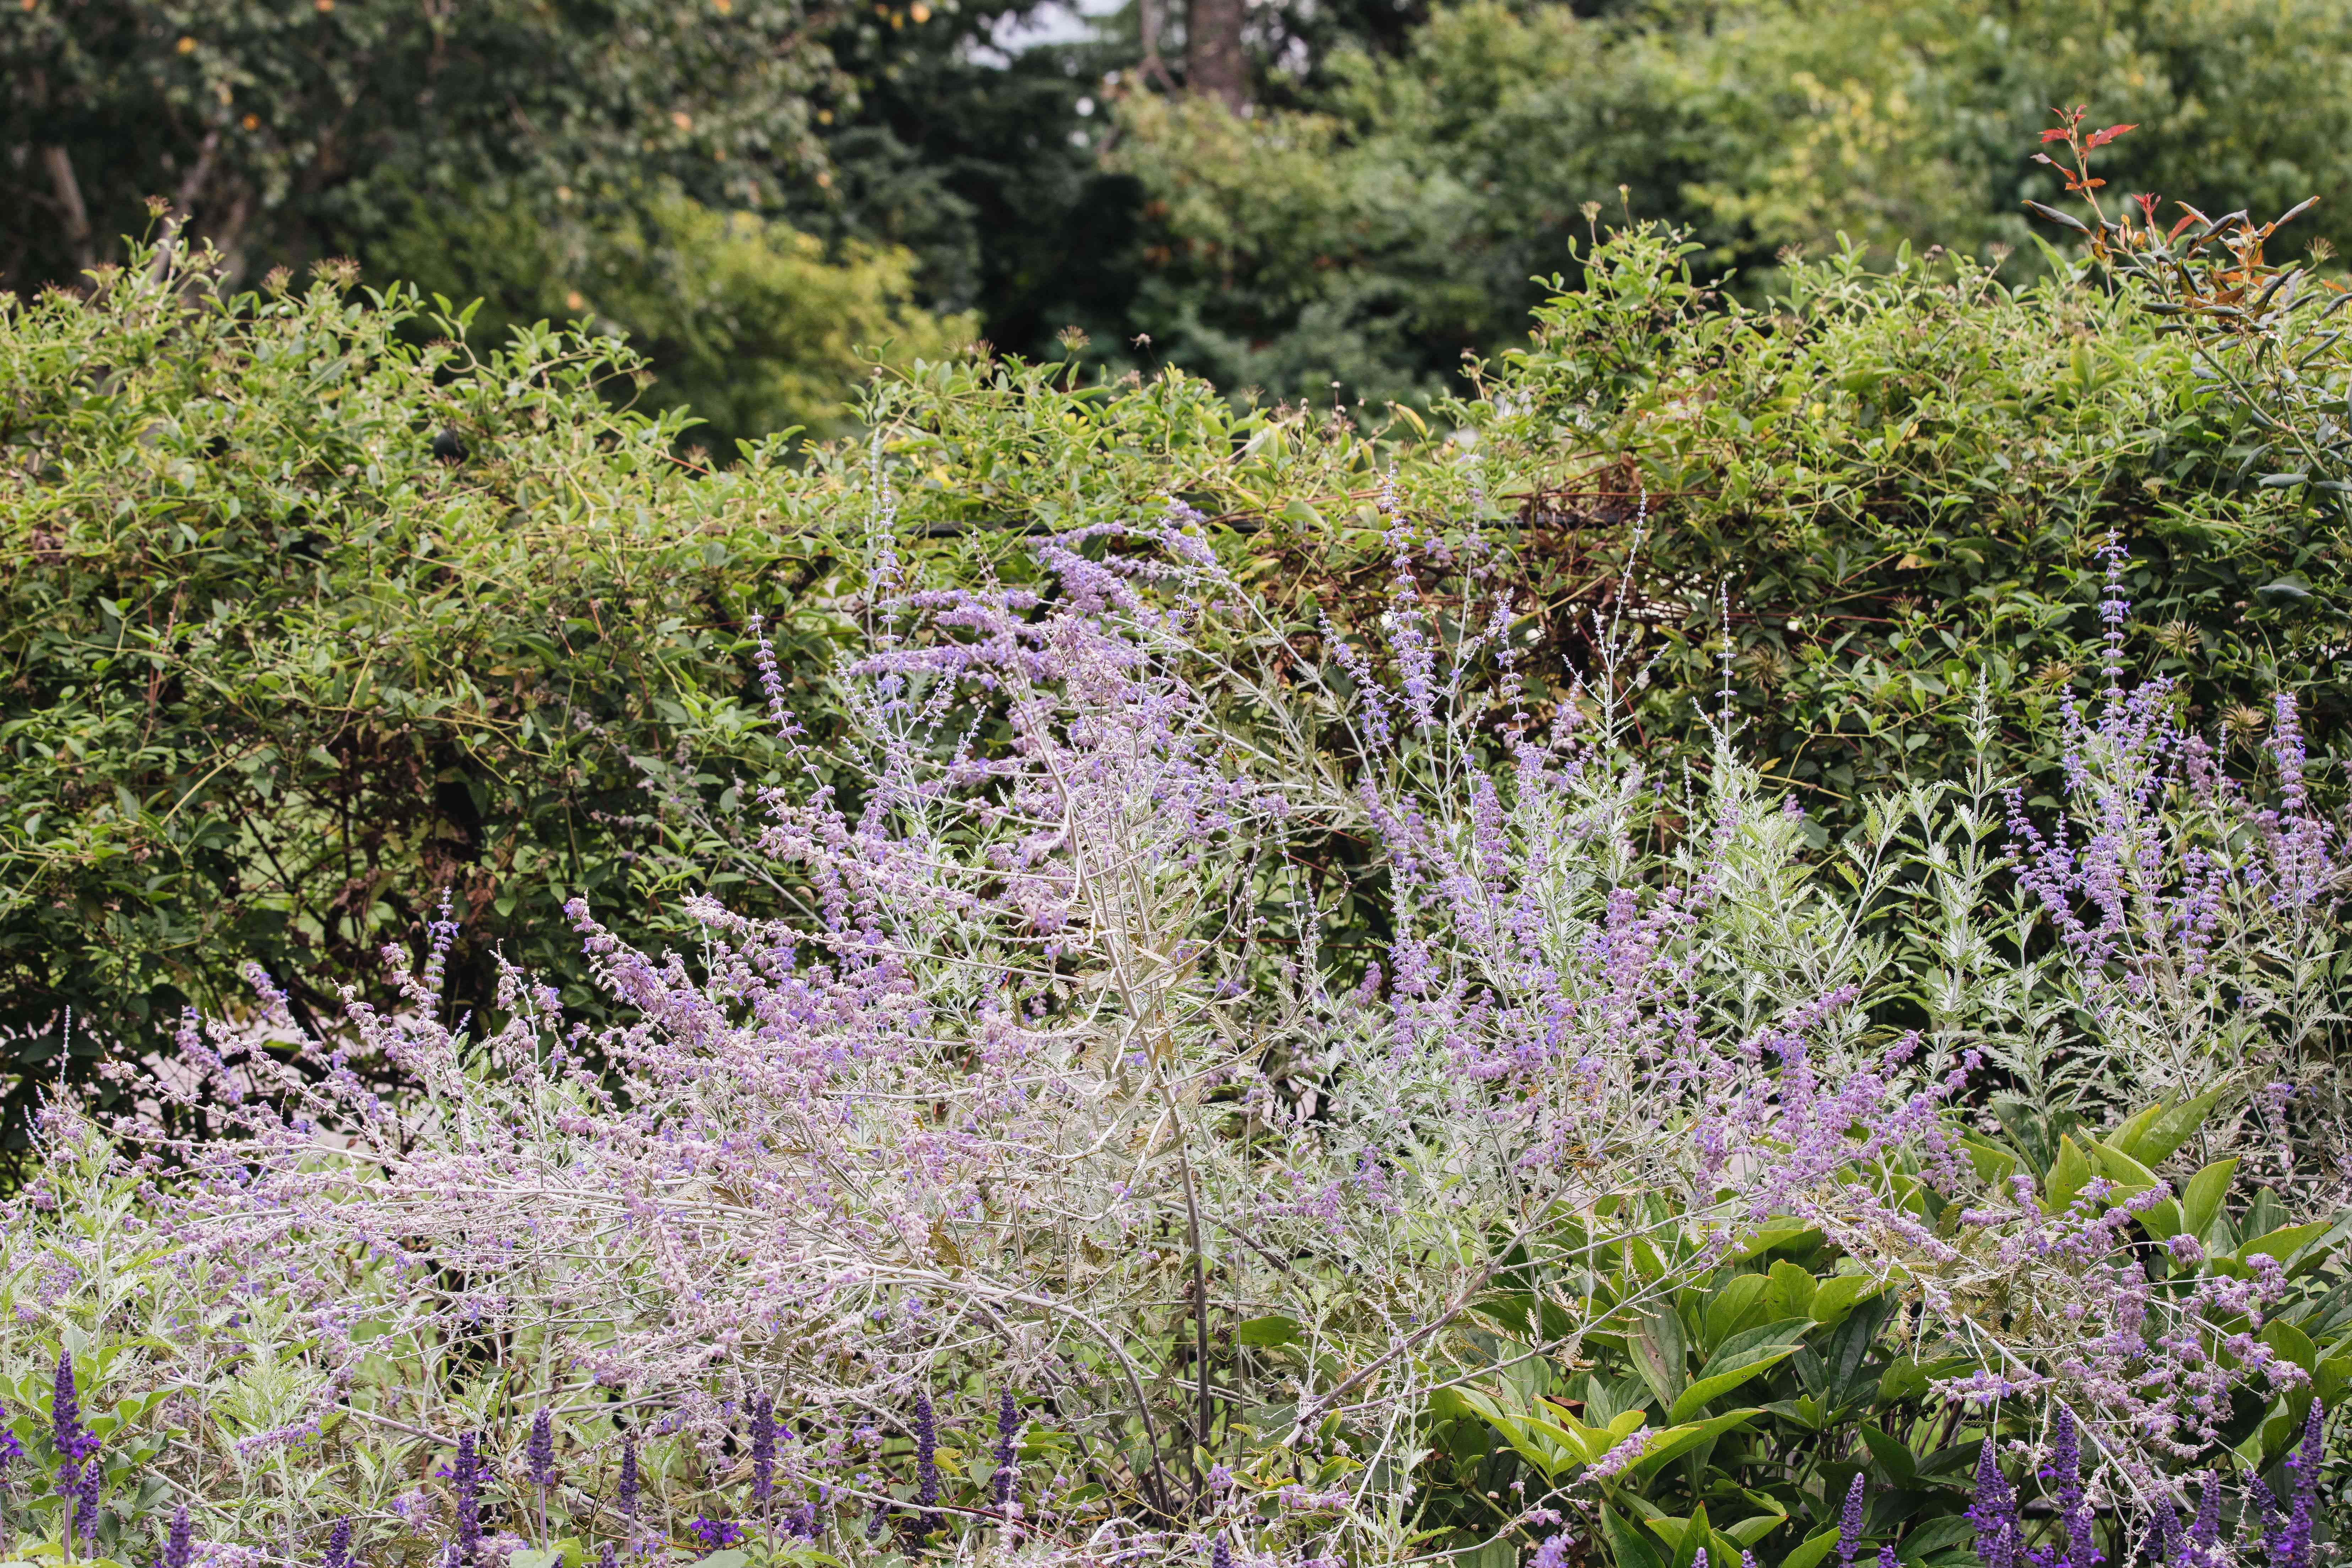 Russian sage plant with thin wispy branches with small purple blooms